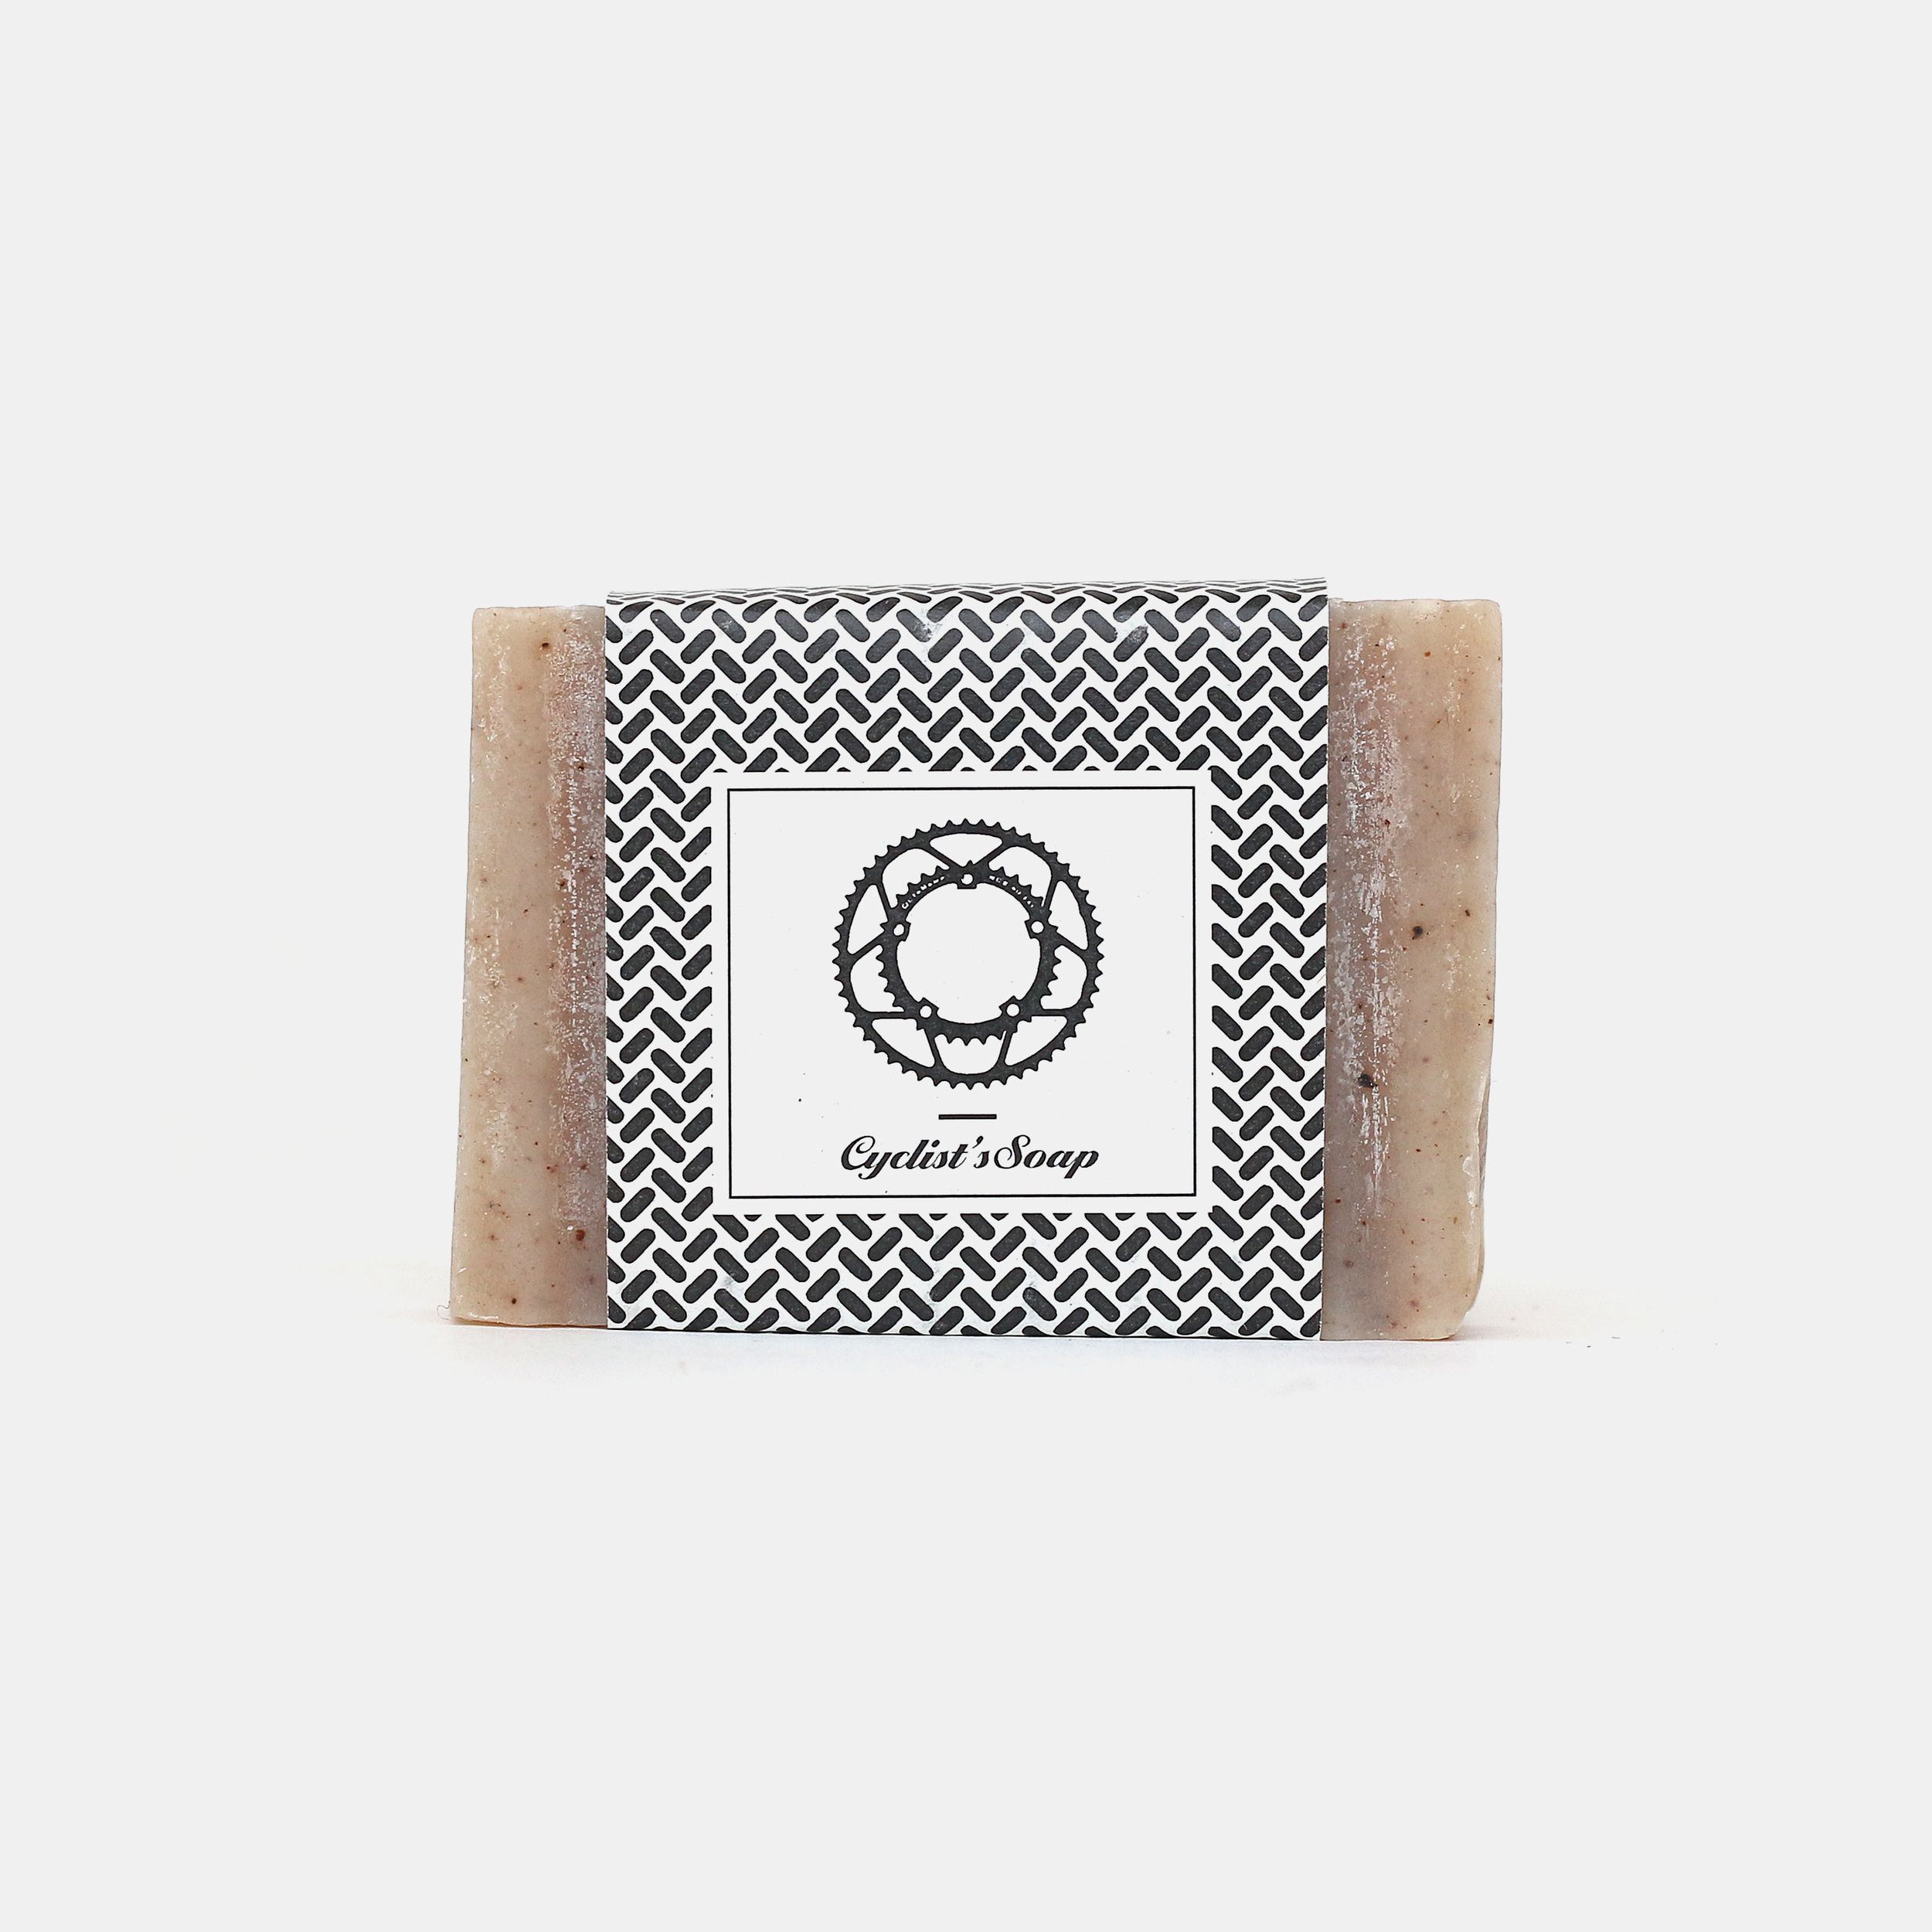 London Fields Cyclist's Soap, £4  This cyclist's soap will soothe you after a day on the road or trails. Blend of cocoa butter, nutmeg, and spicy essential oils.